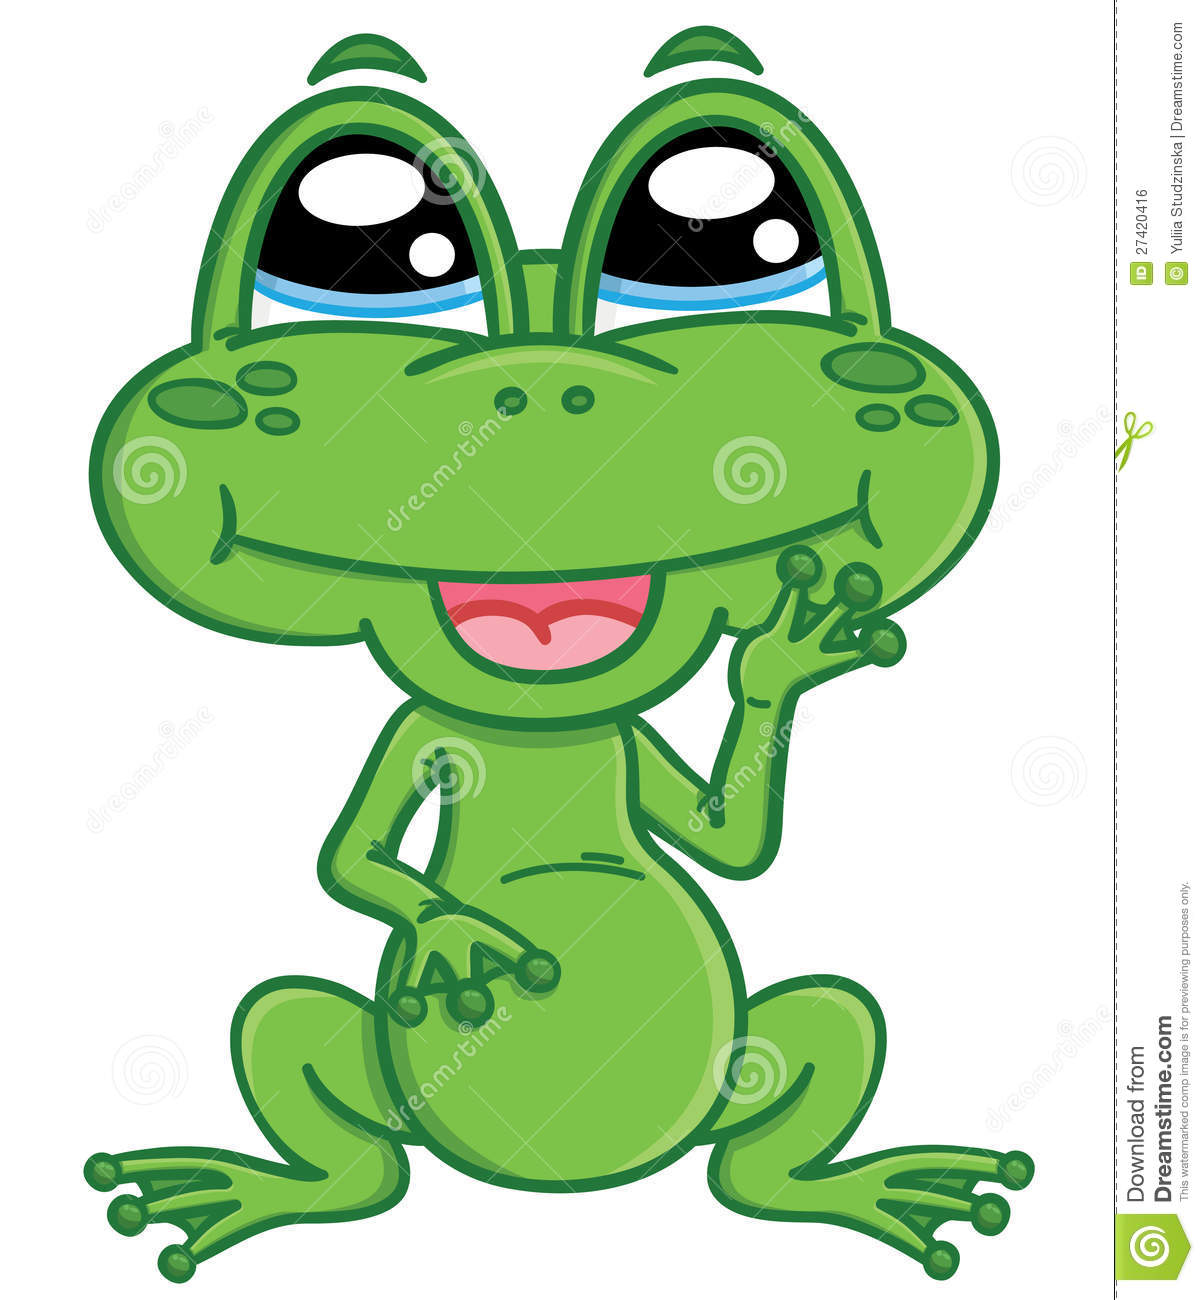 Free animated frog wallpaper sound wallpapersafari - Frog cartoon wallpaper ...